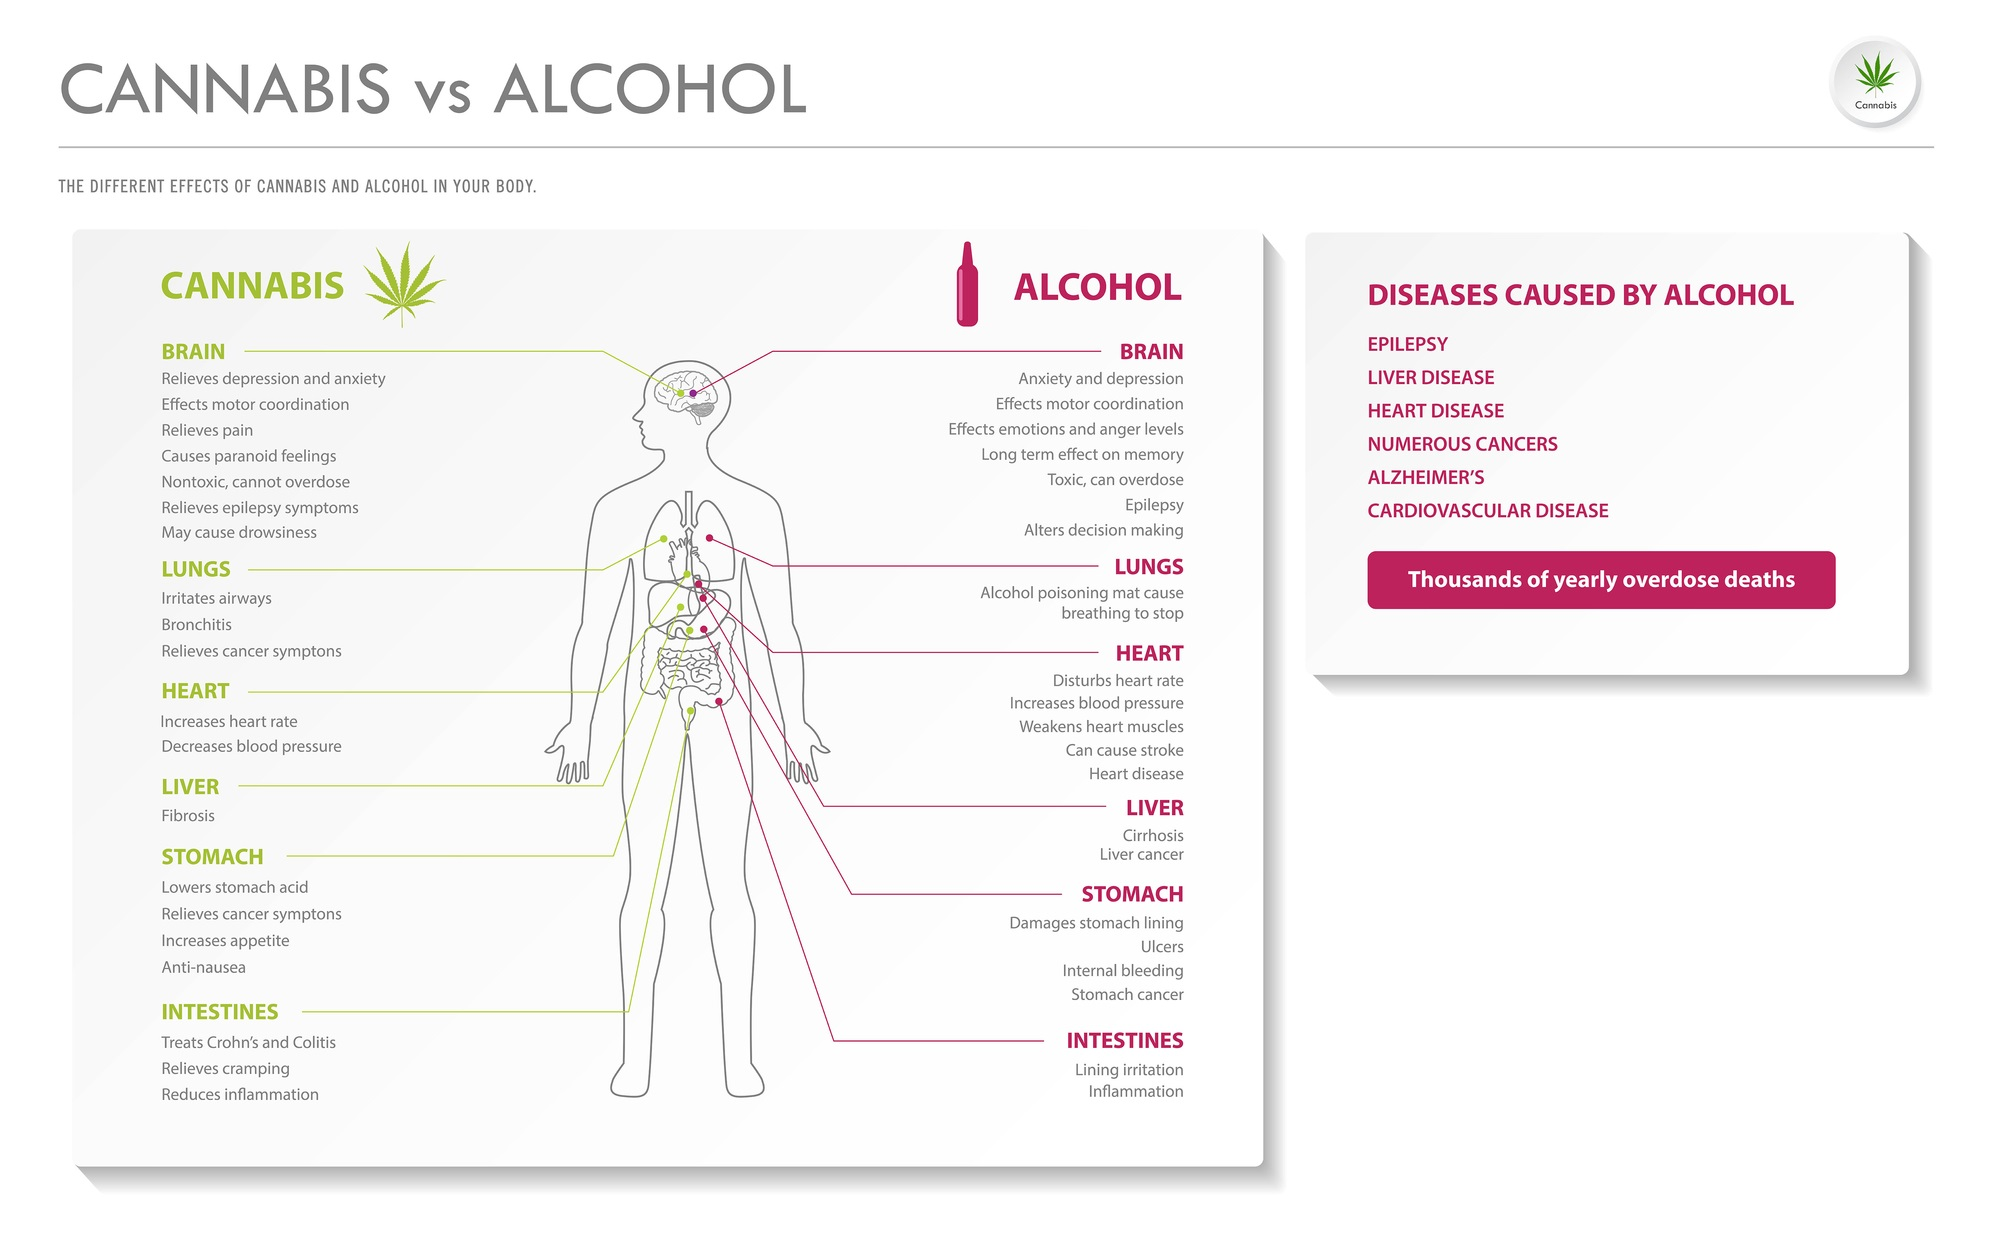 disease caused by alcohol